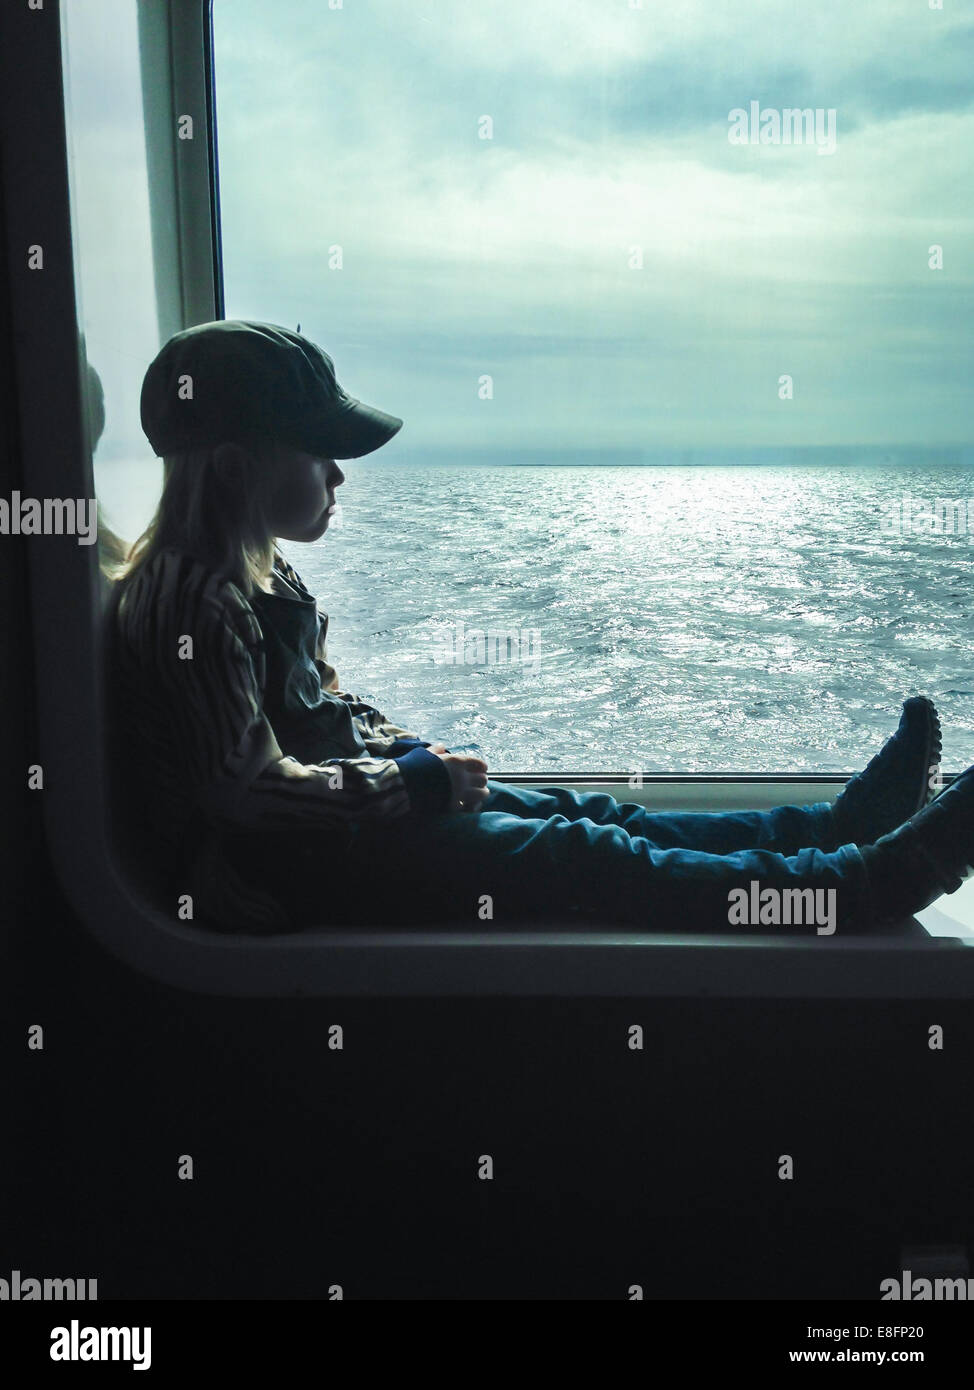 Side view of boy sitting in  window on ferry - Stock Image